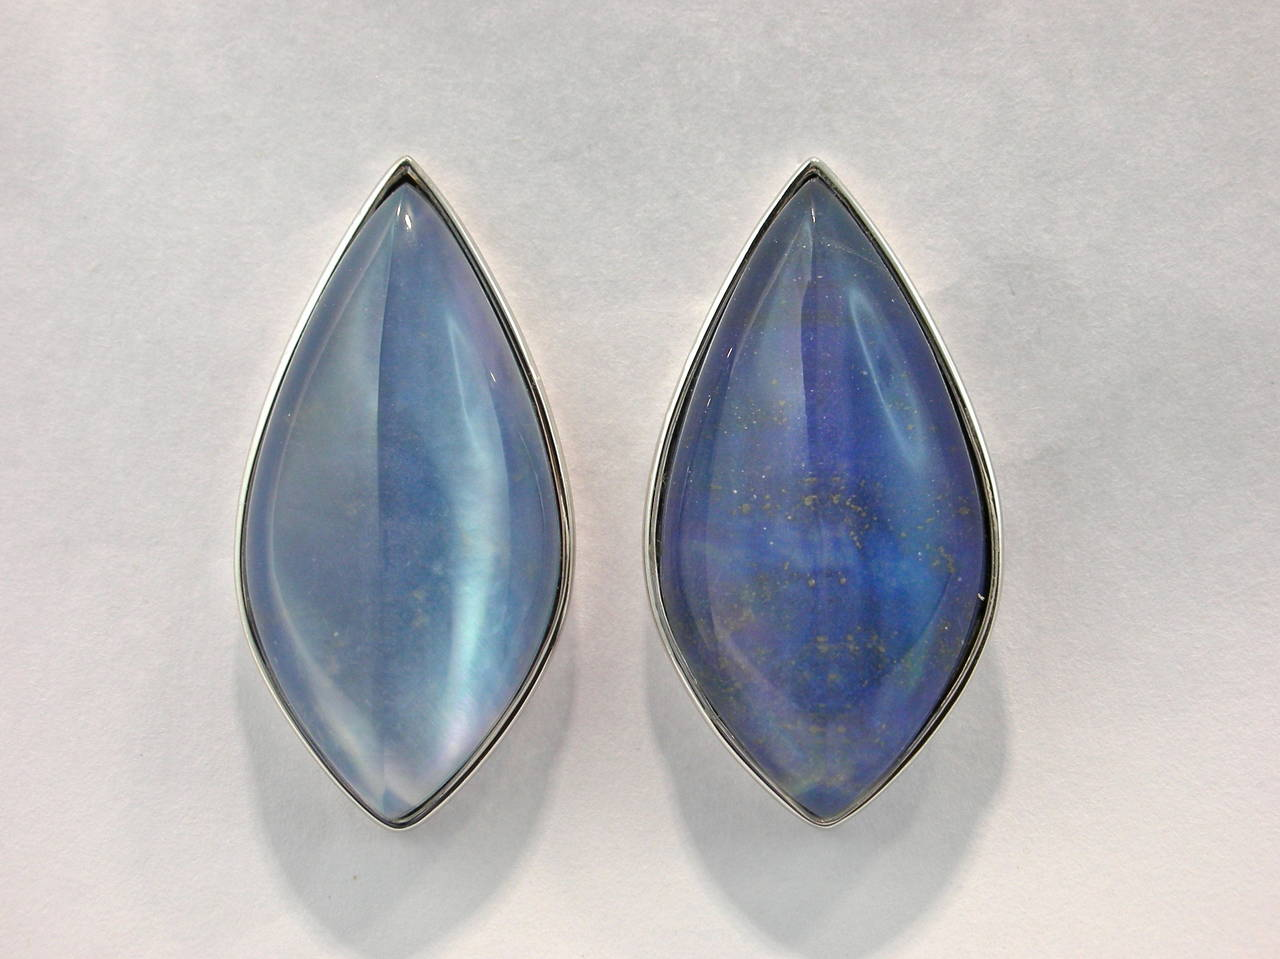 Jona Lapis Lazuli Quartz Mother of Pearl 18 Karat White Gold Stud Earrings In New Condition For Sale In Torino IT